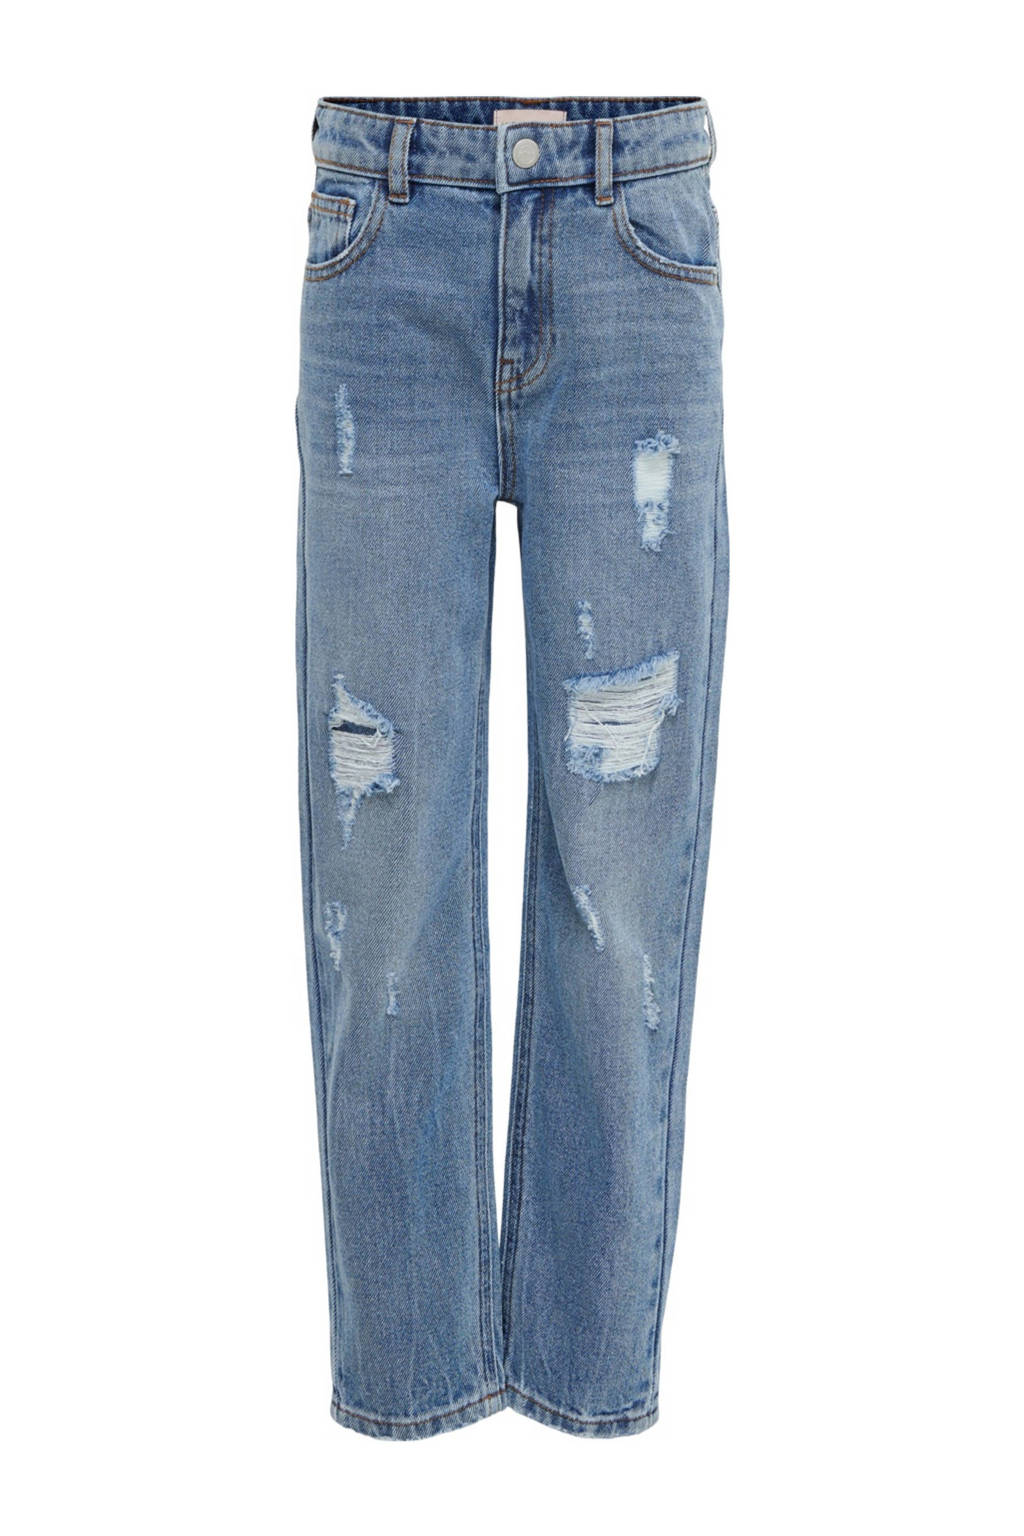 KIDS ONLY high waist mom jeans Calla light denim, Light denim